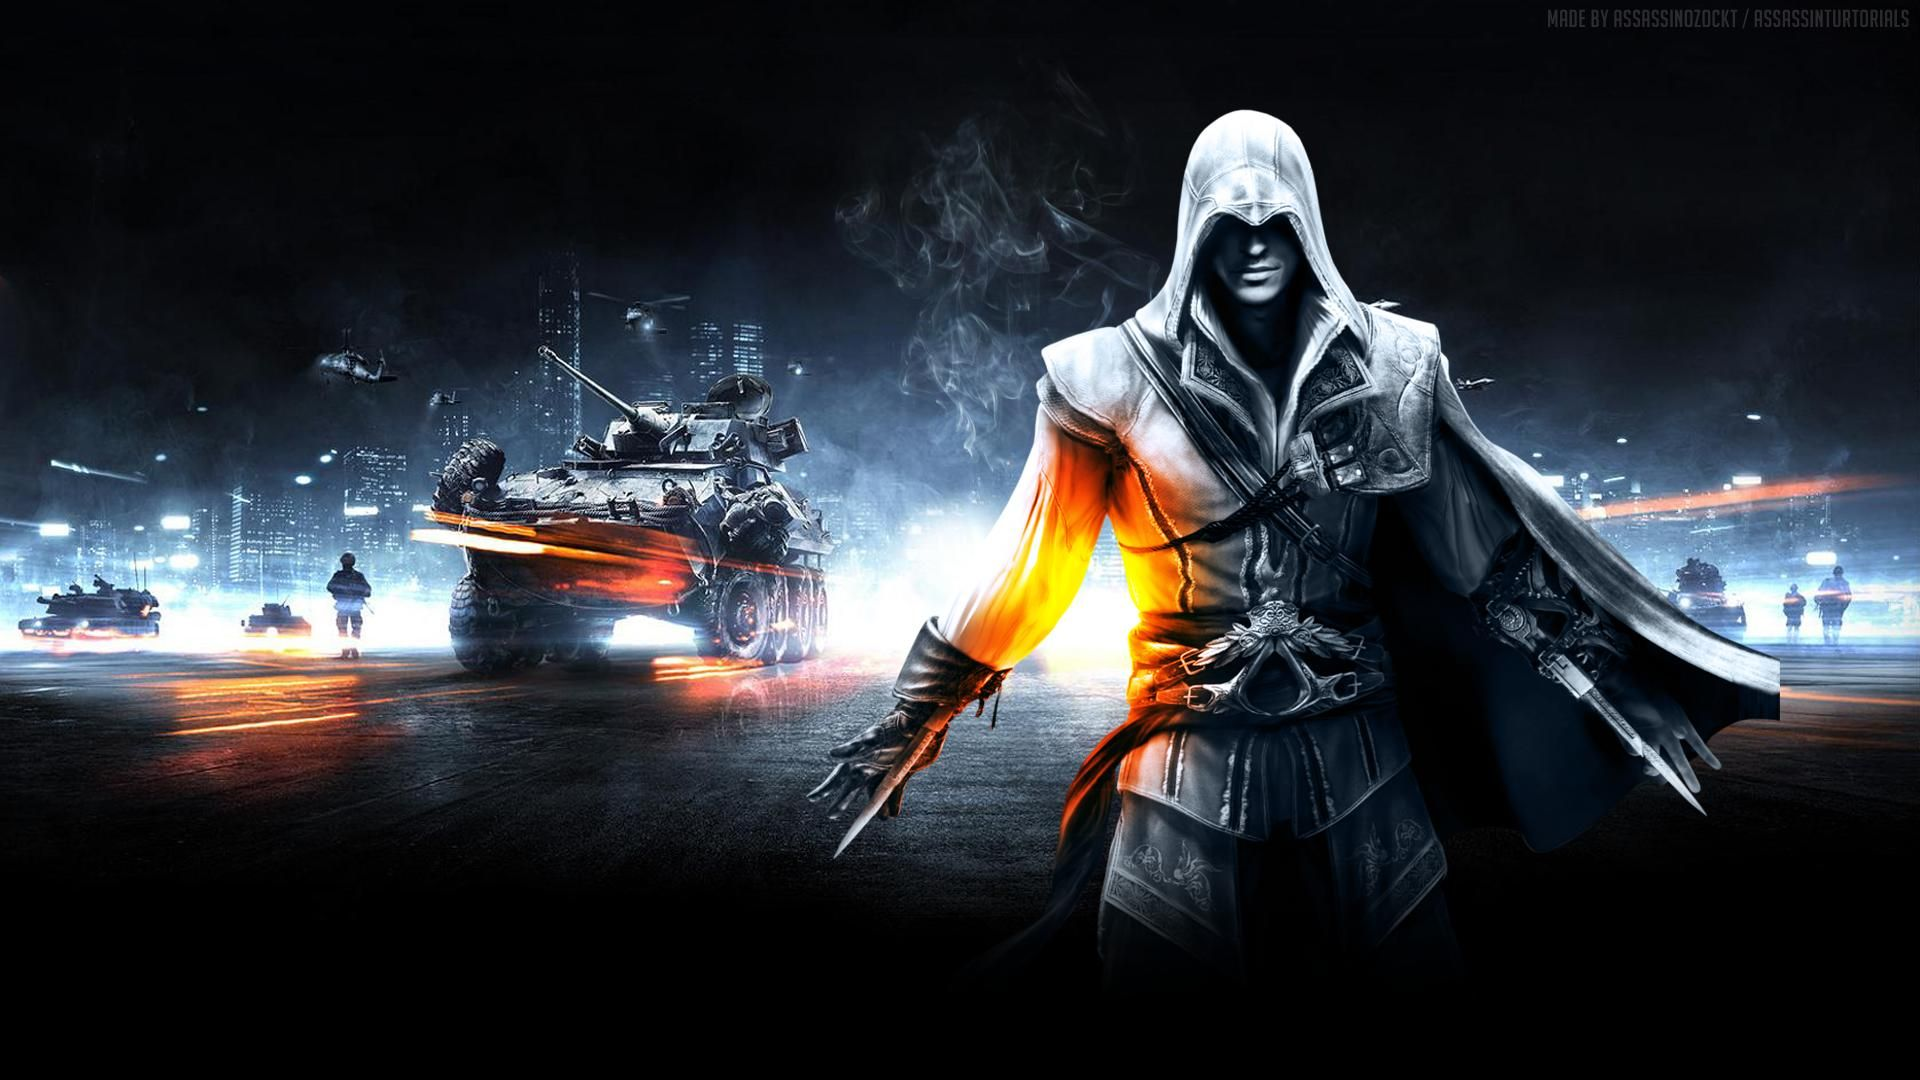 Cool Gaming Hd Wallpapers Hd Wallpapers For Pc Best Gaming Wallpapers 4k Gaming Wallpaper